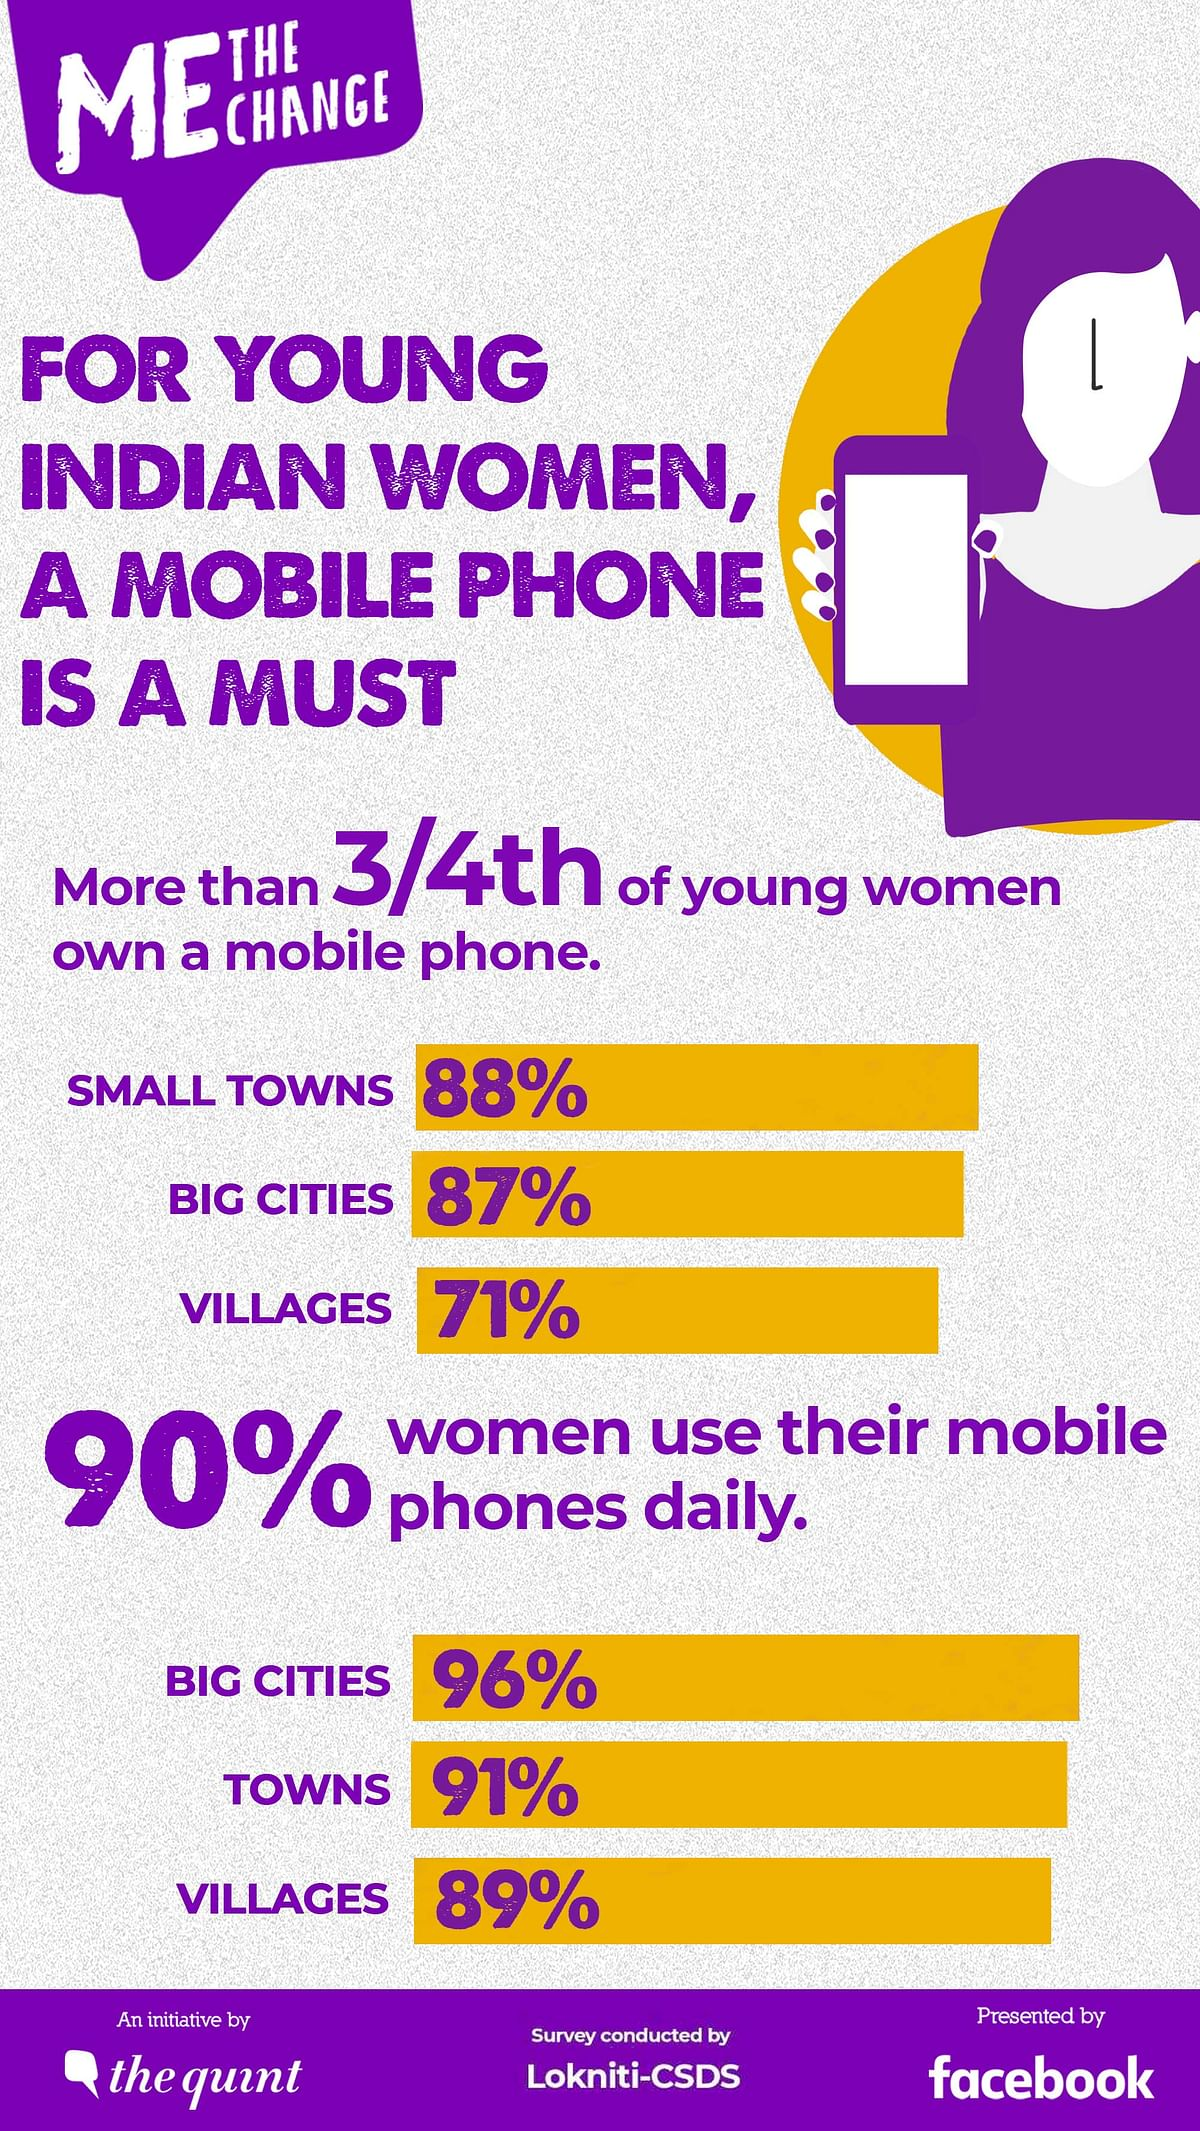 Me, The Change: For Young Women Voters, Mobile Phone Zaroori Hai!